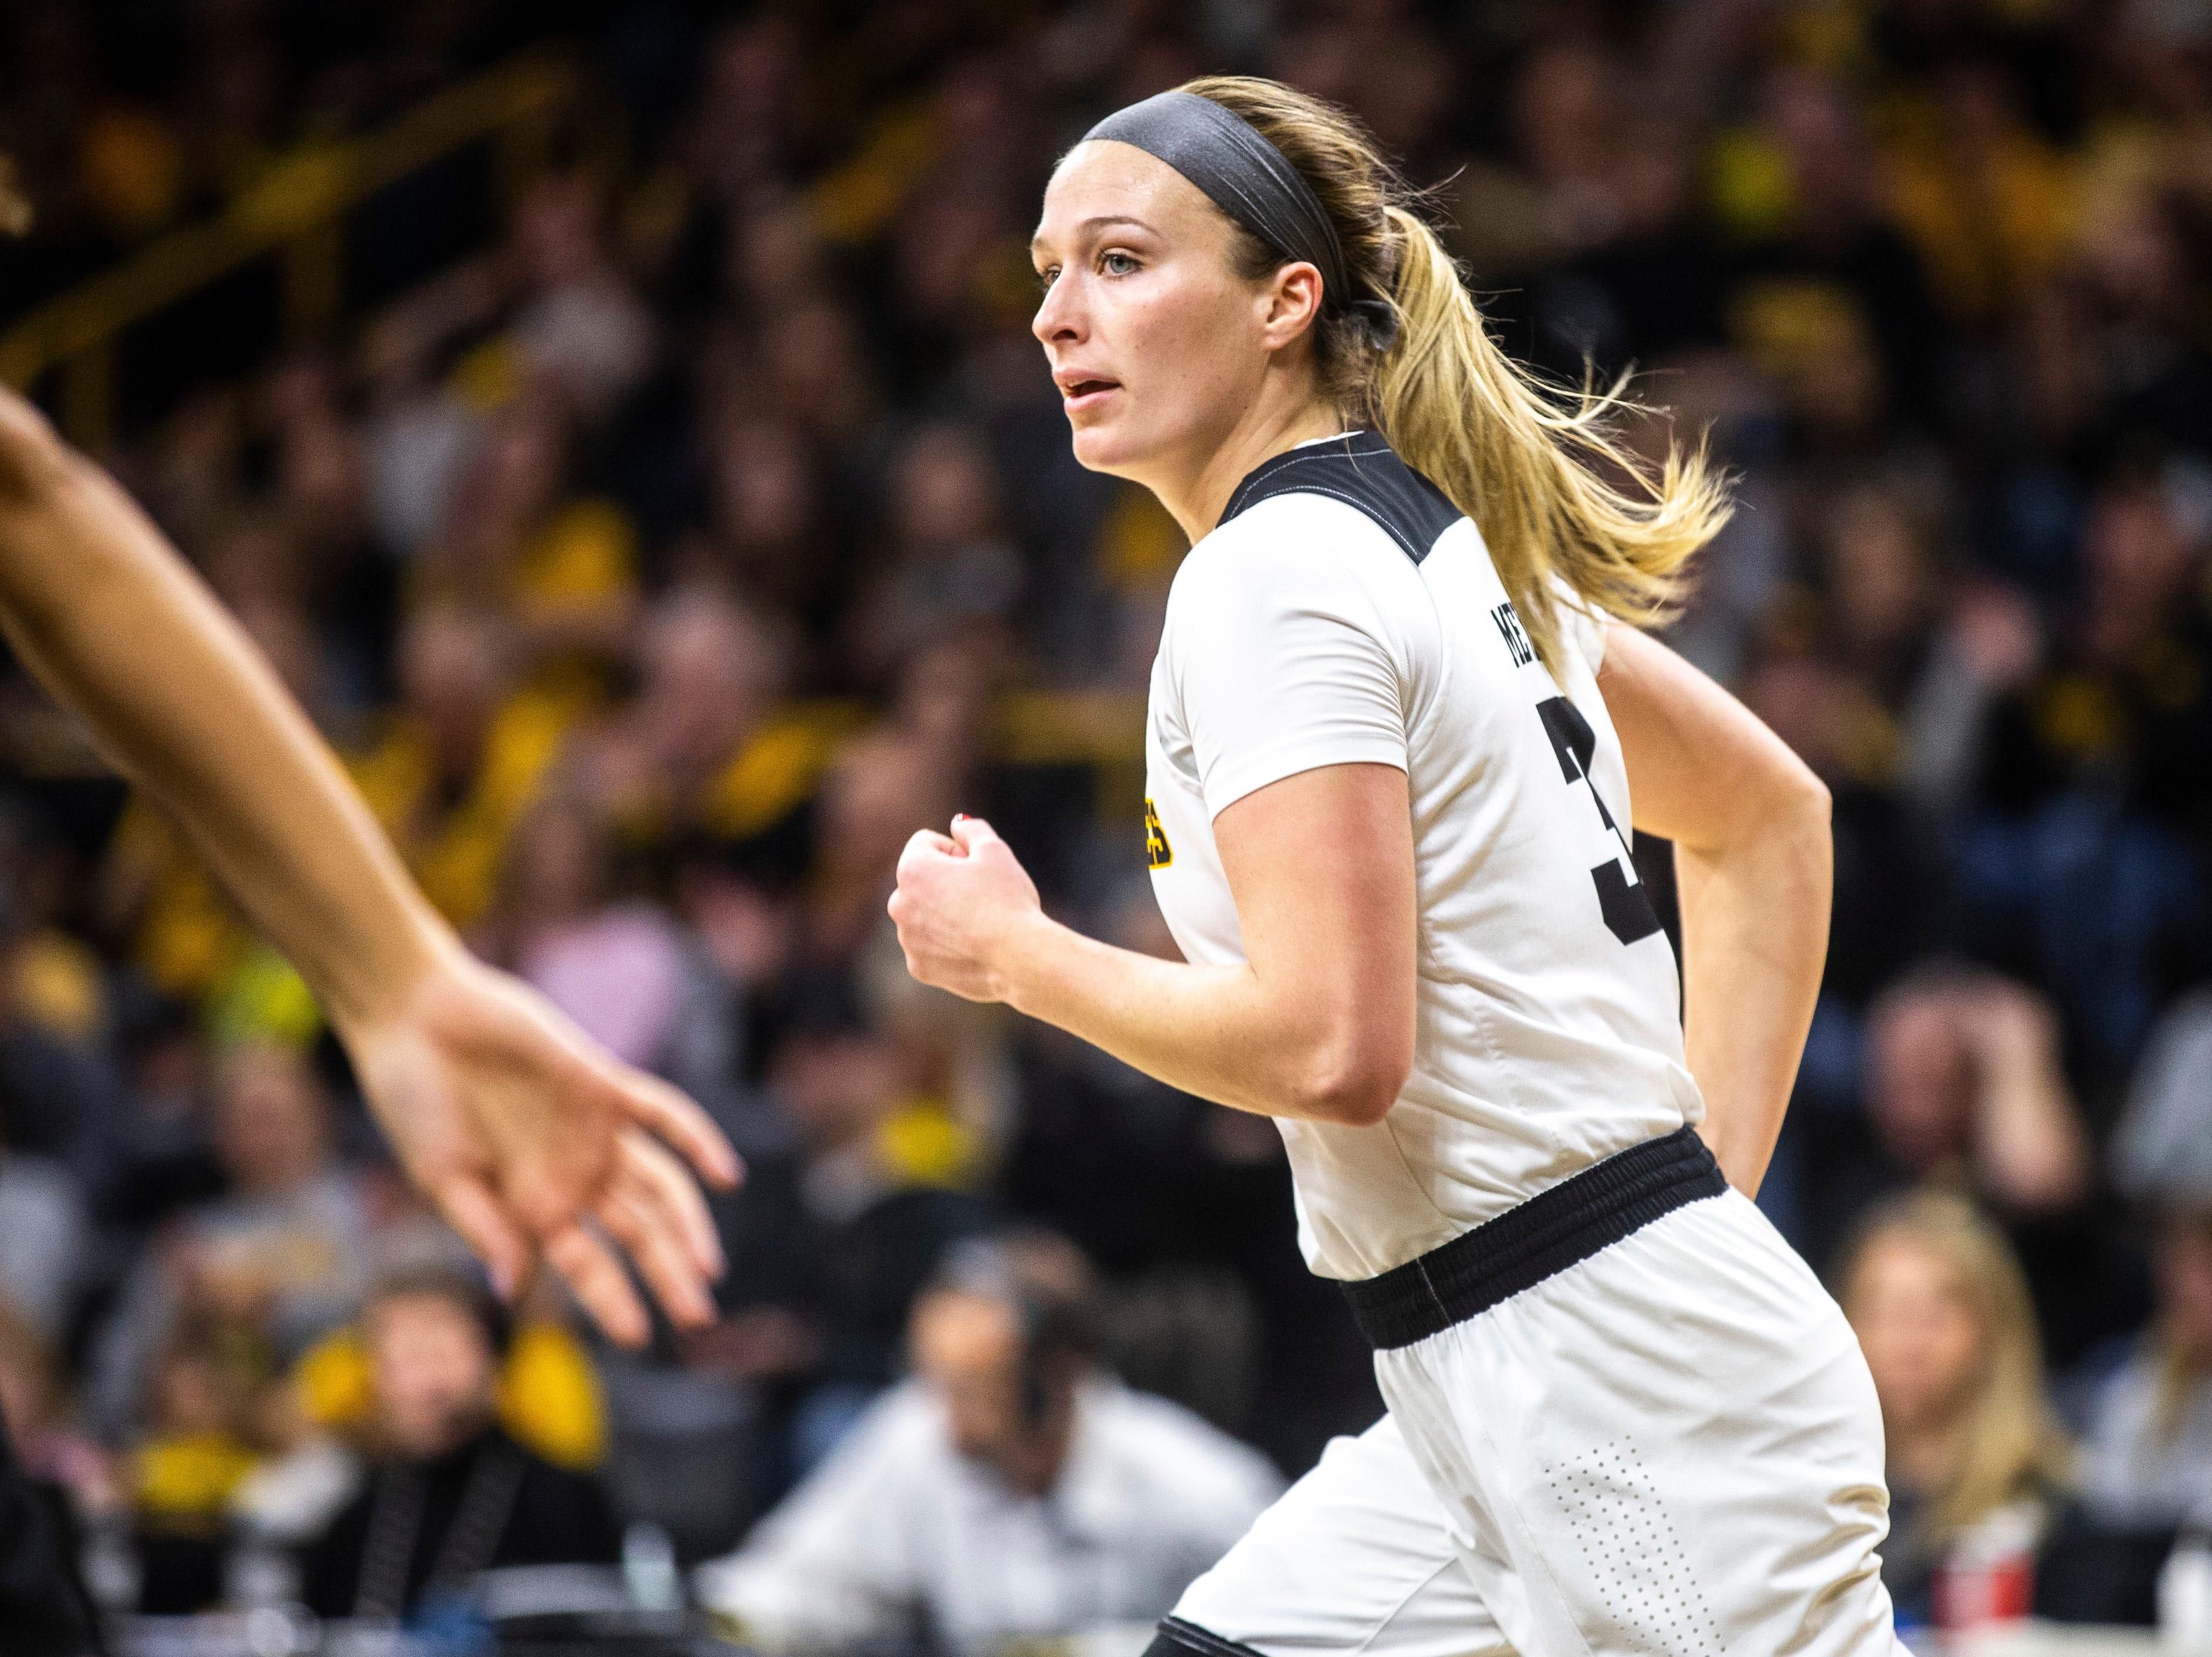 Iowa guard Makenzie Meyer (3) runs up court after making a basket during a NCAA women's basketball tournament second-round game, Sunday, March 24, 2019, at Carver-Hawkeye Arena in Iowa City, Iowa.